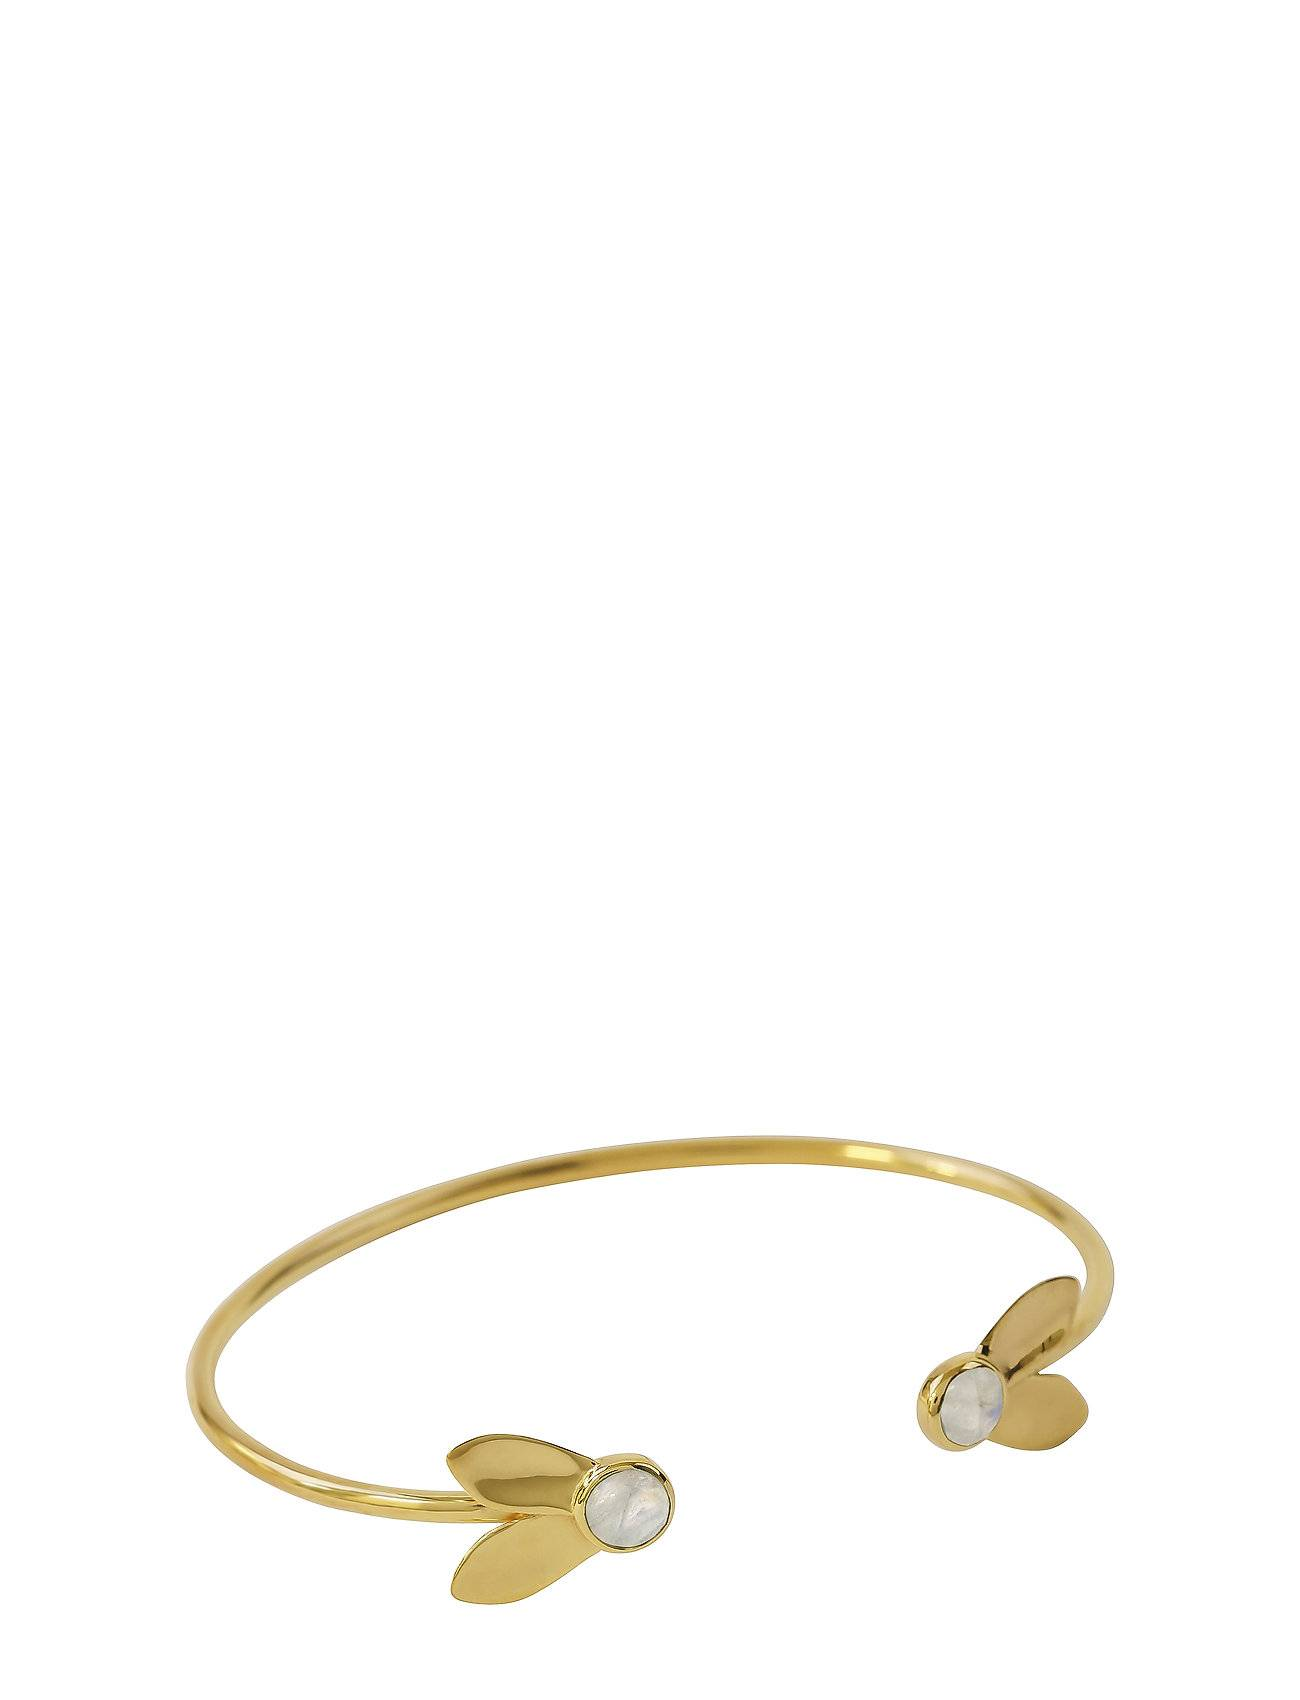 Syster P Flakes Bangle Gold Moonst Accessories Jewellery Bracelets Bangles Kulta Syster P